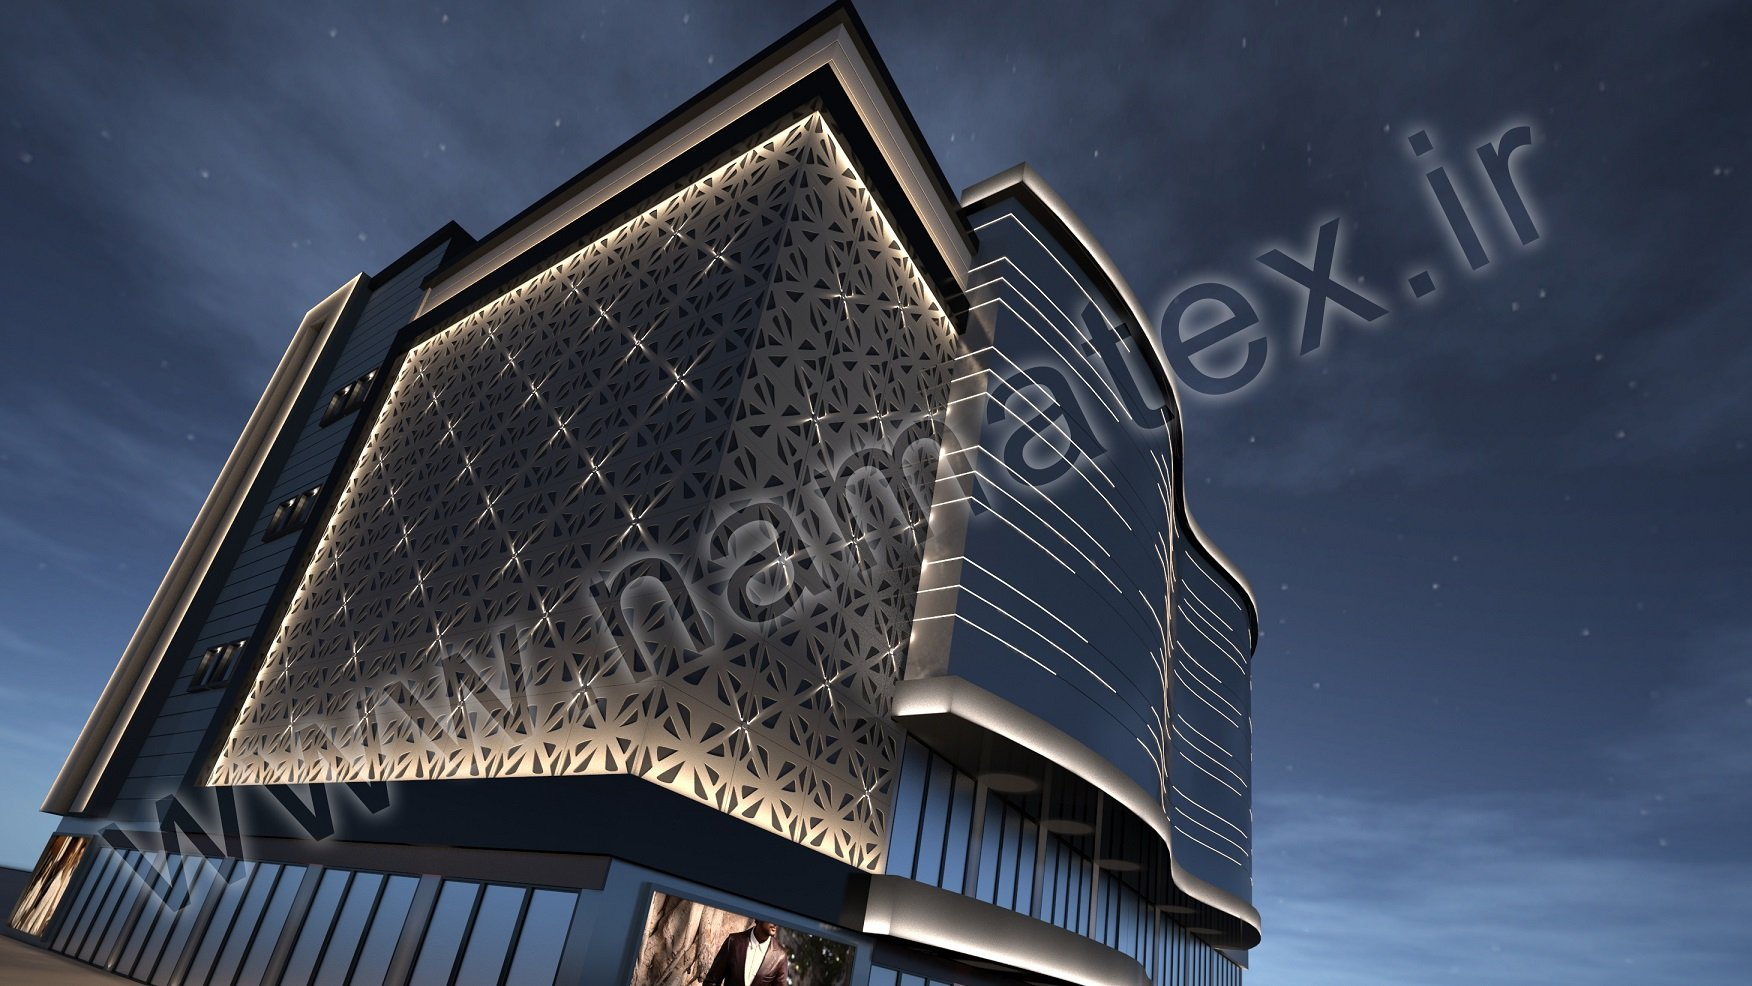 Lighting of Building Exterior